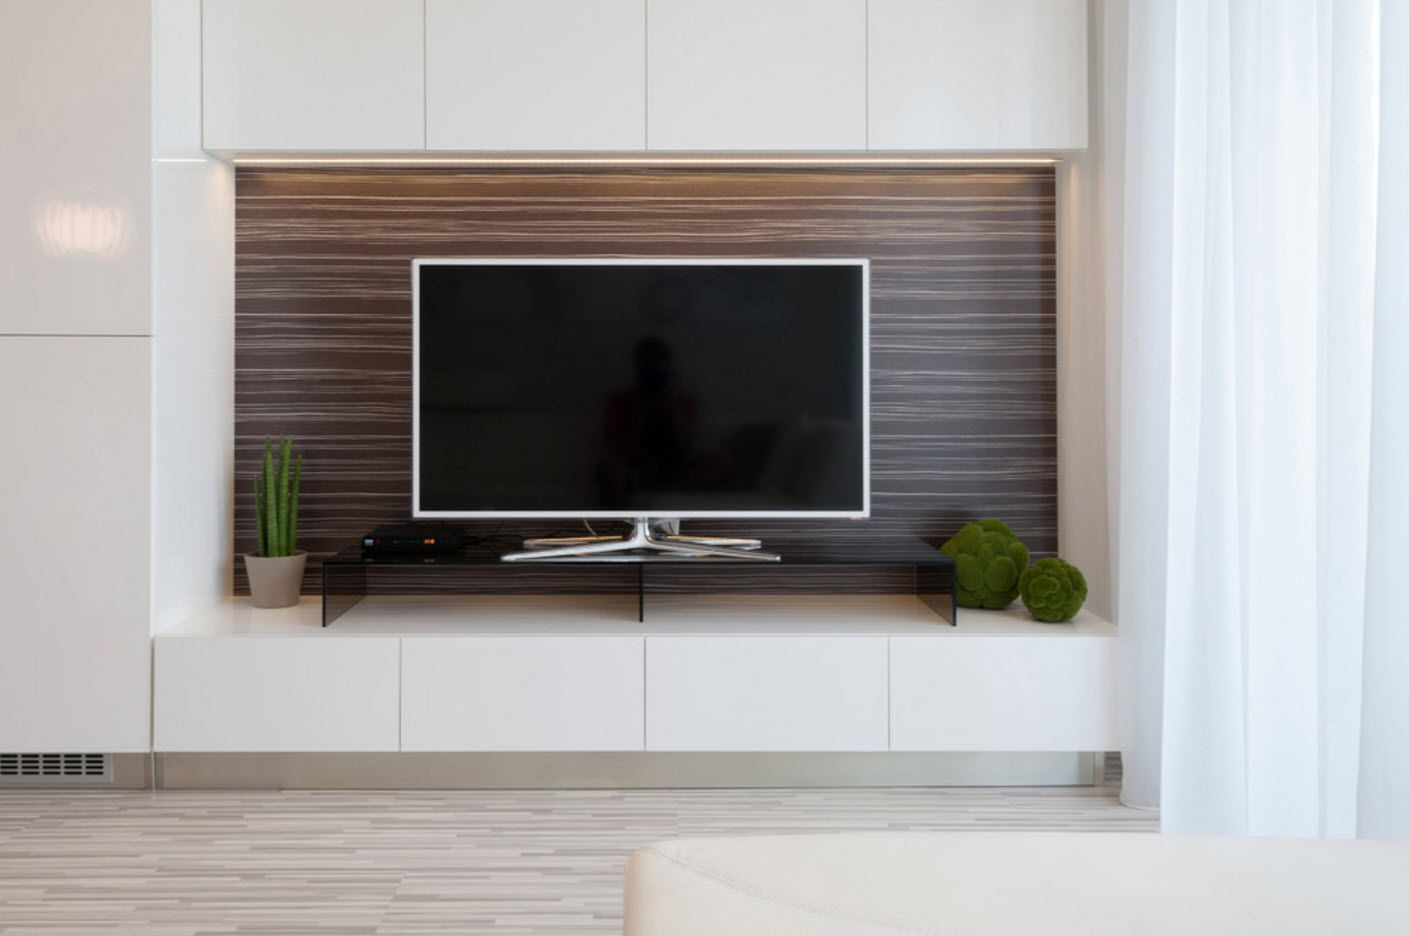 TV-set within the modern apartment space